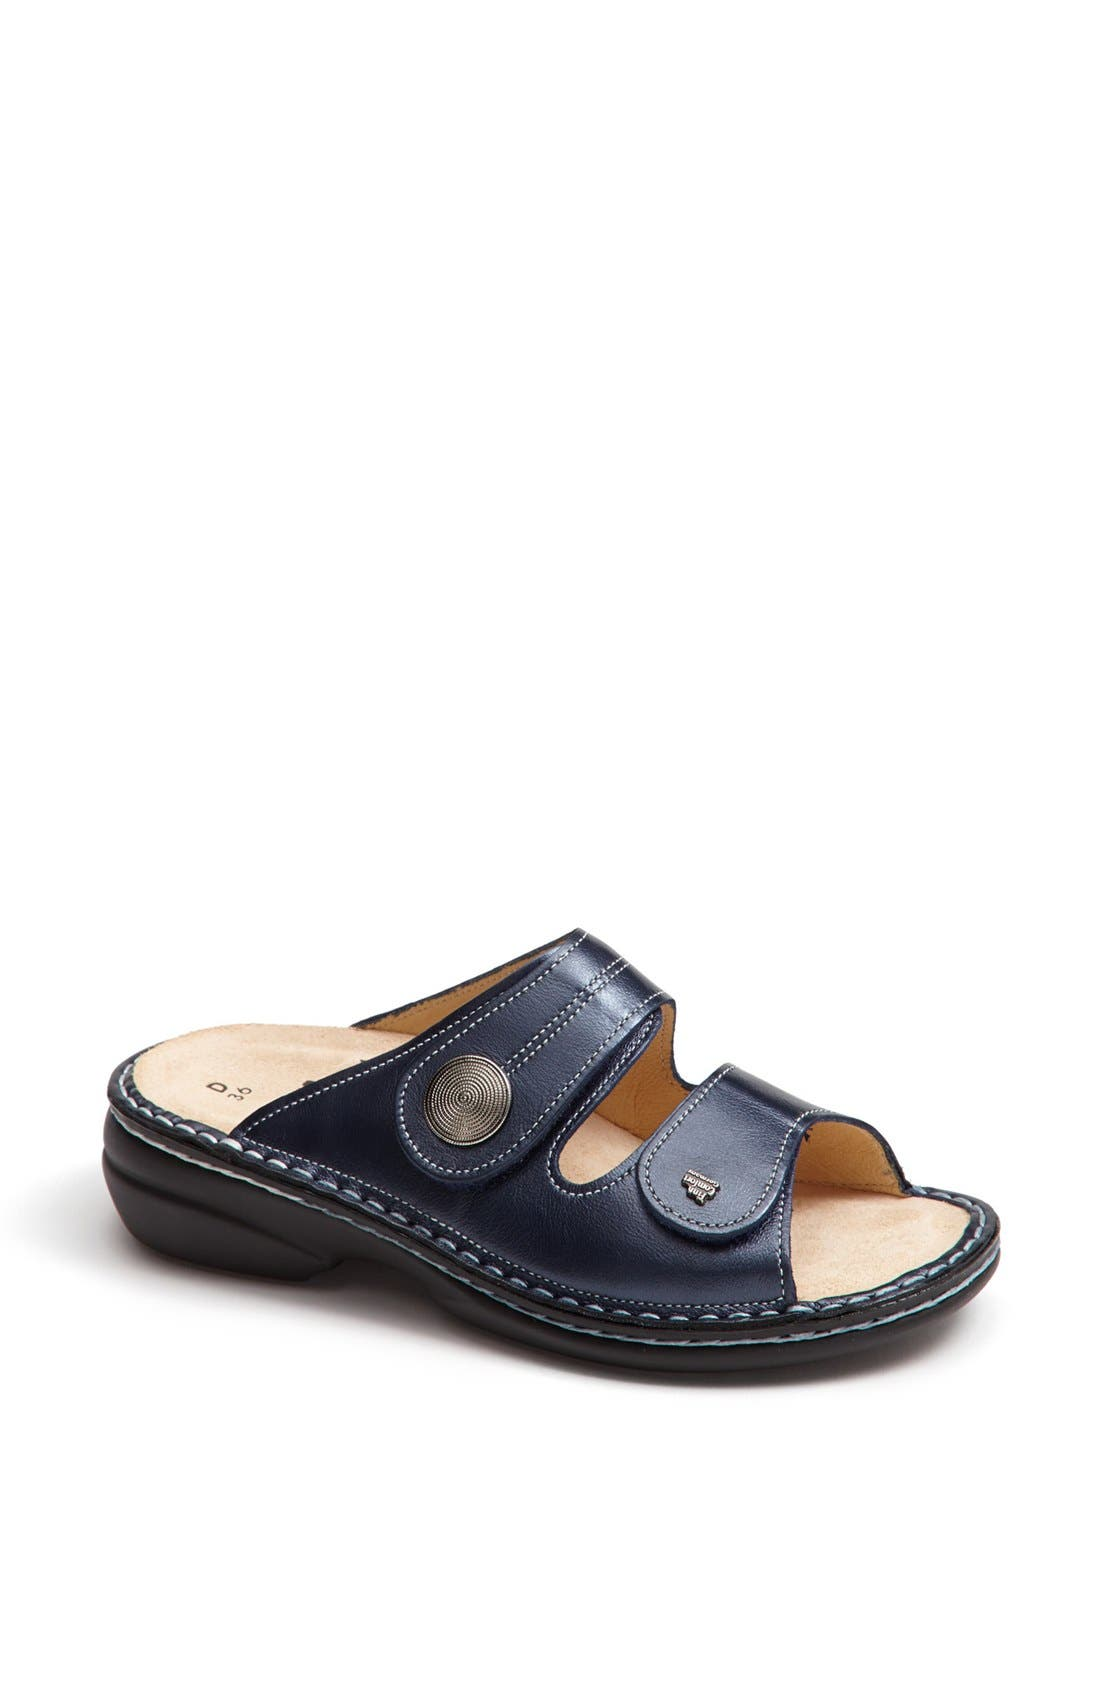 Alternate Image 1 Selected - Finn Comfort 'Sansibar' Sandal